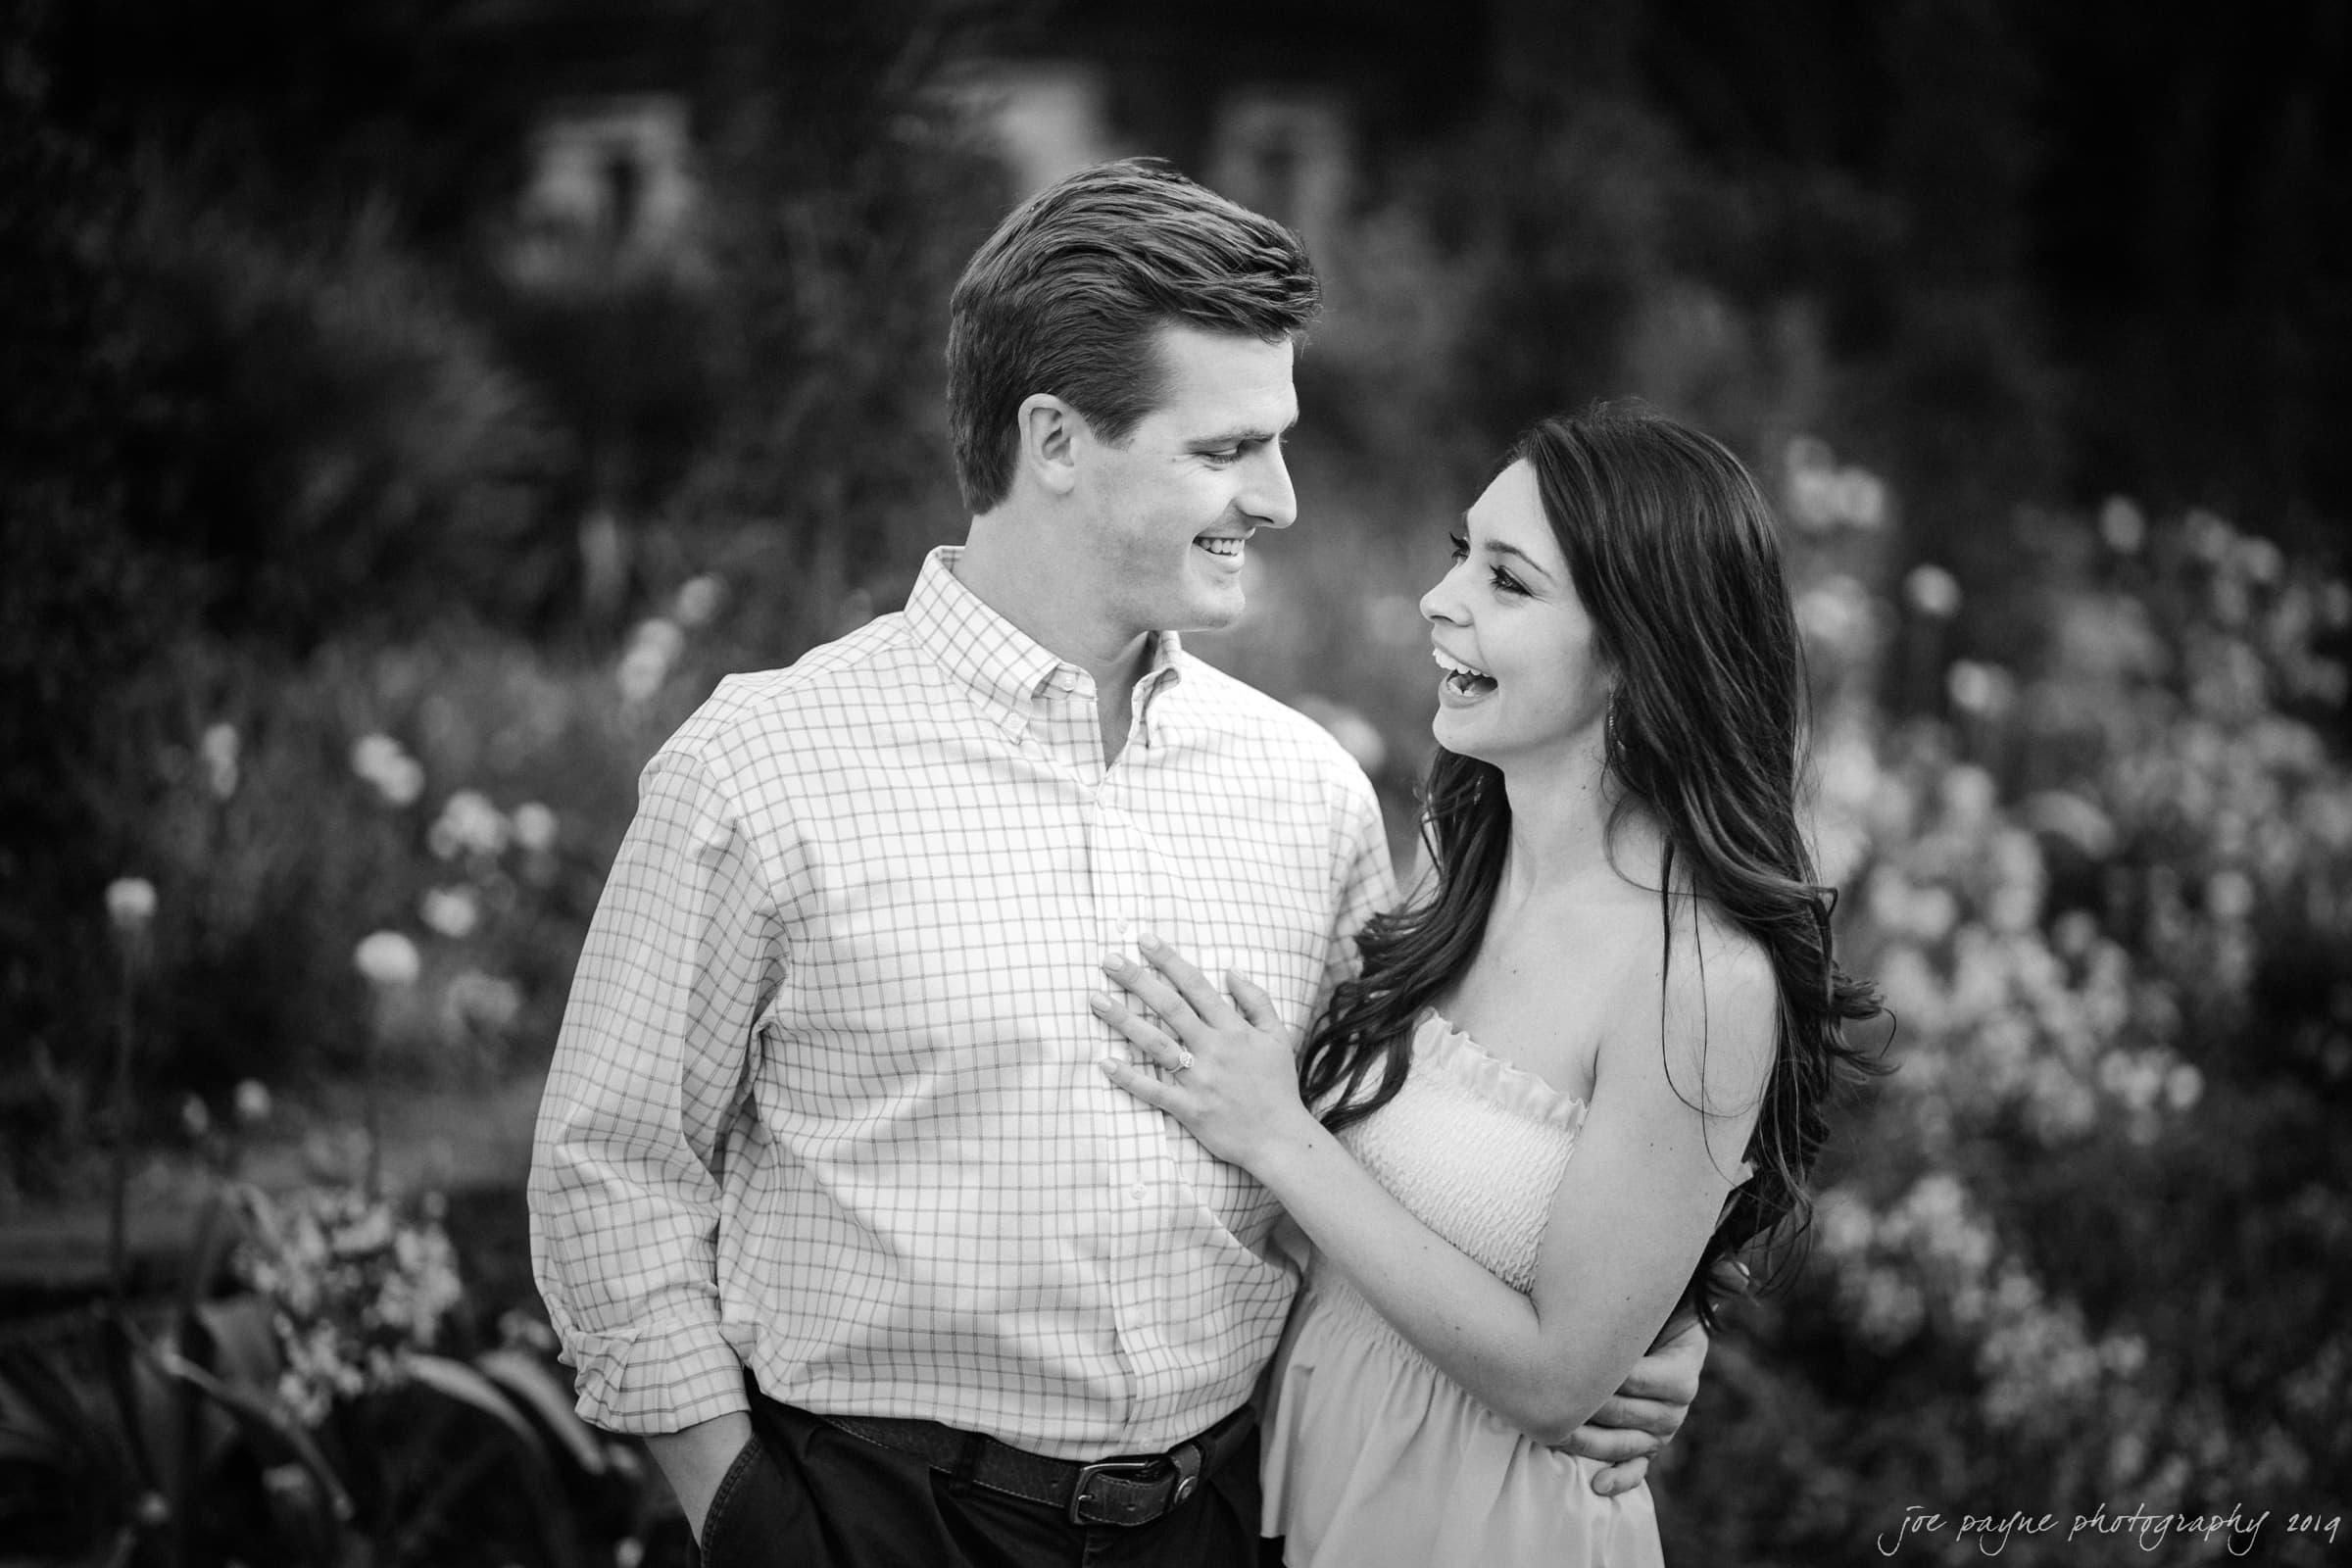 duke gardens engagement session – nikki & john